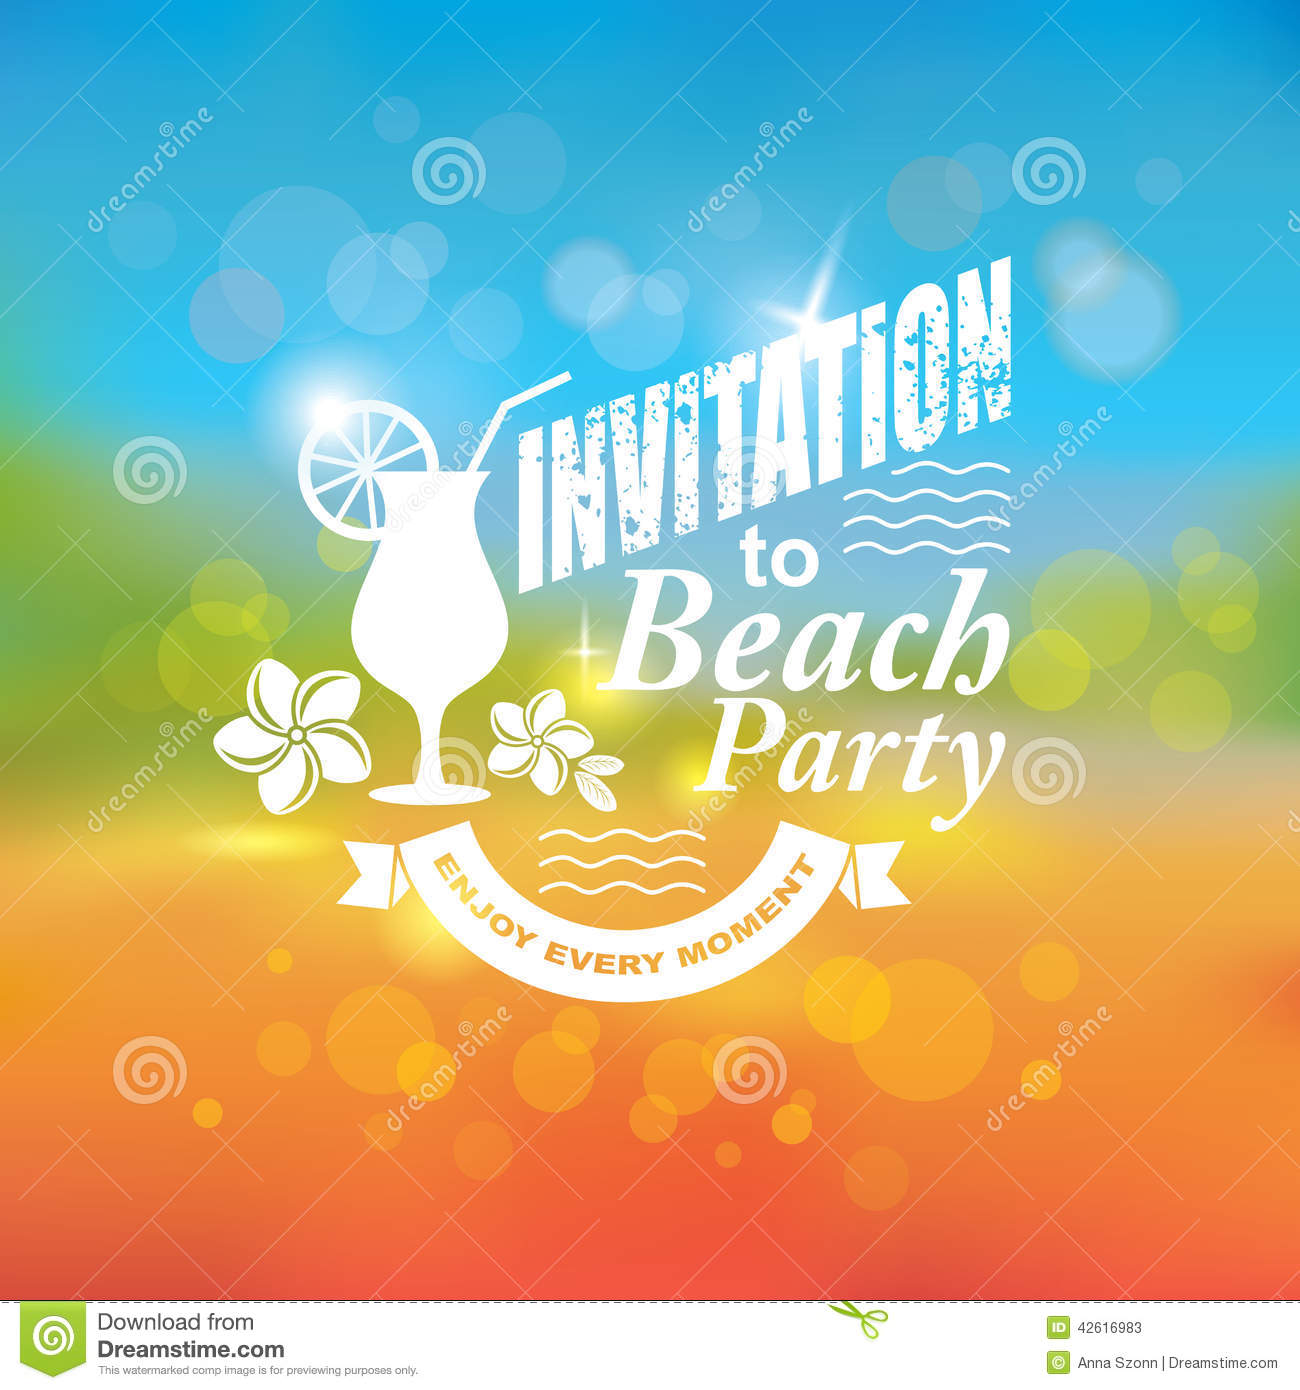 Invitation To Beach Party. Stock Vector - Image: 42616983